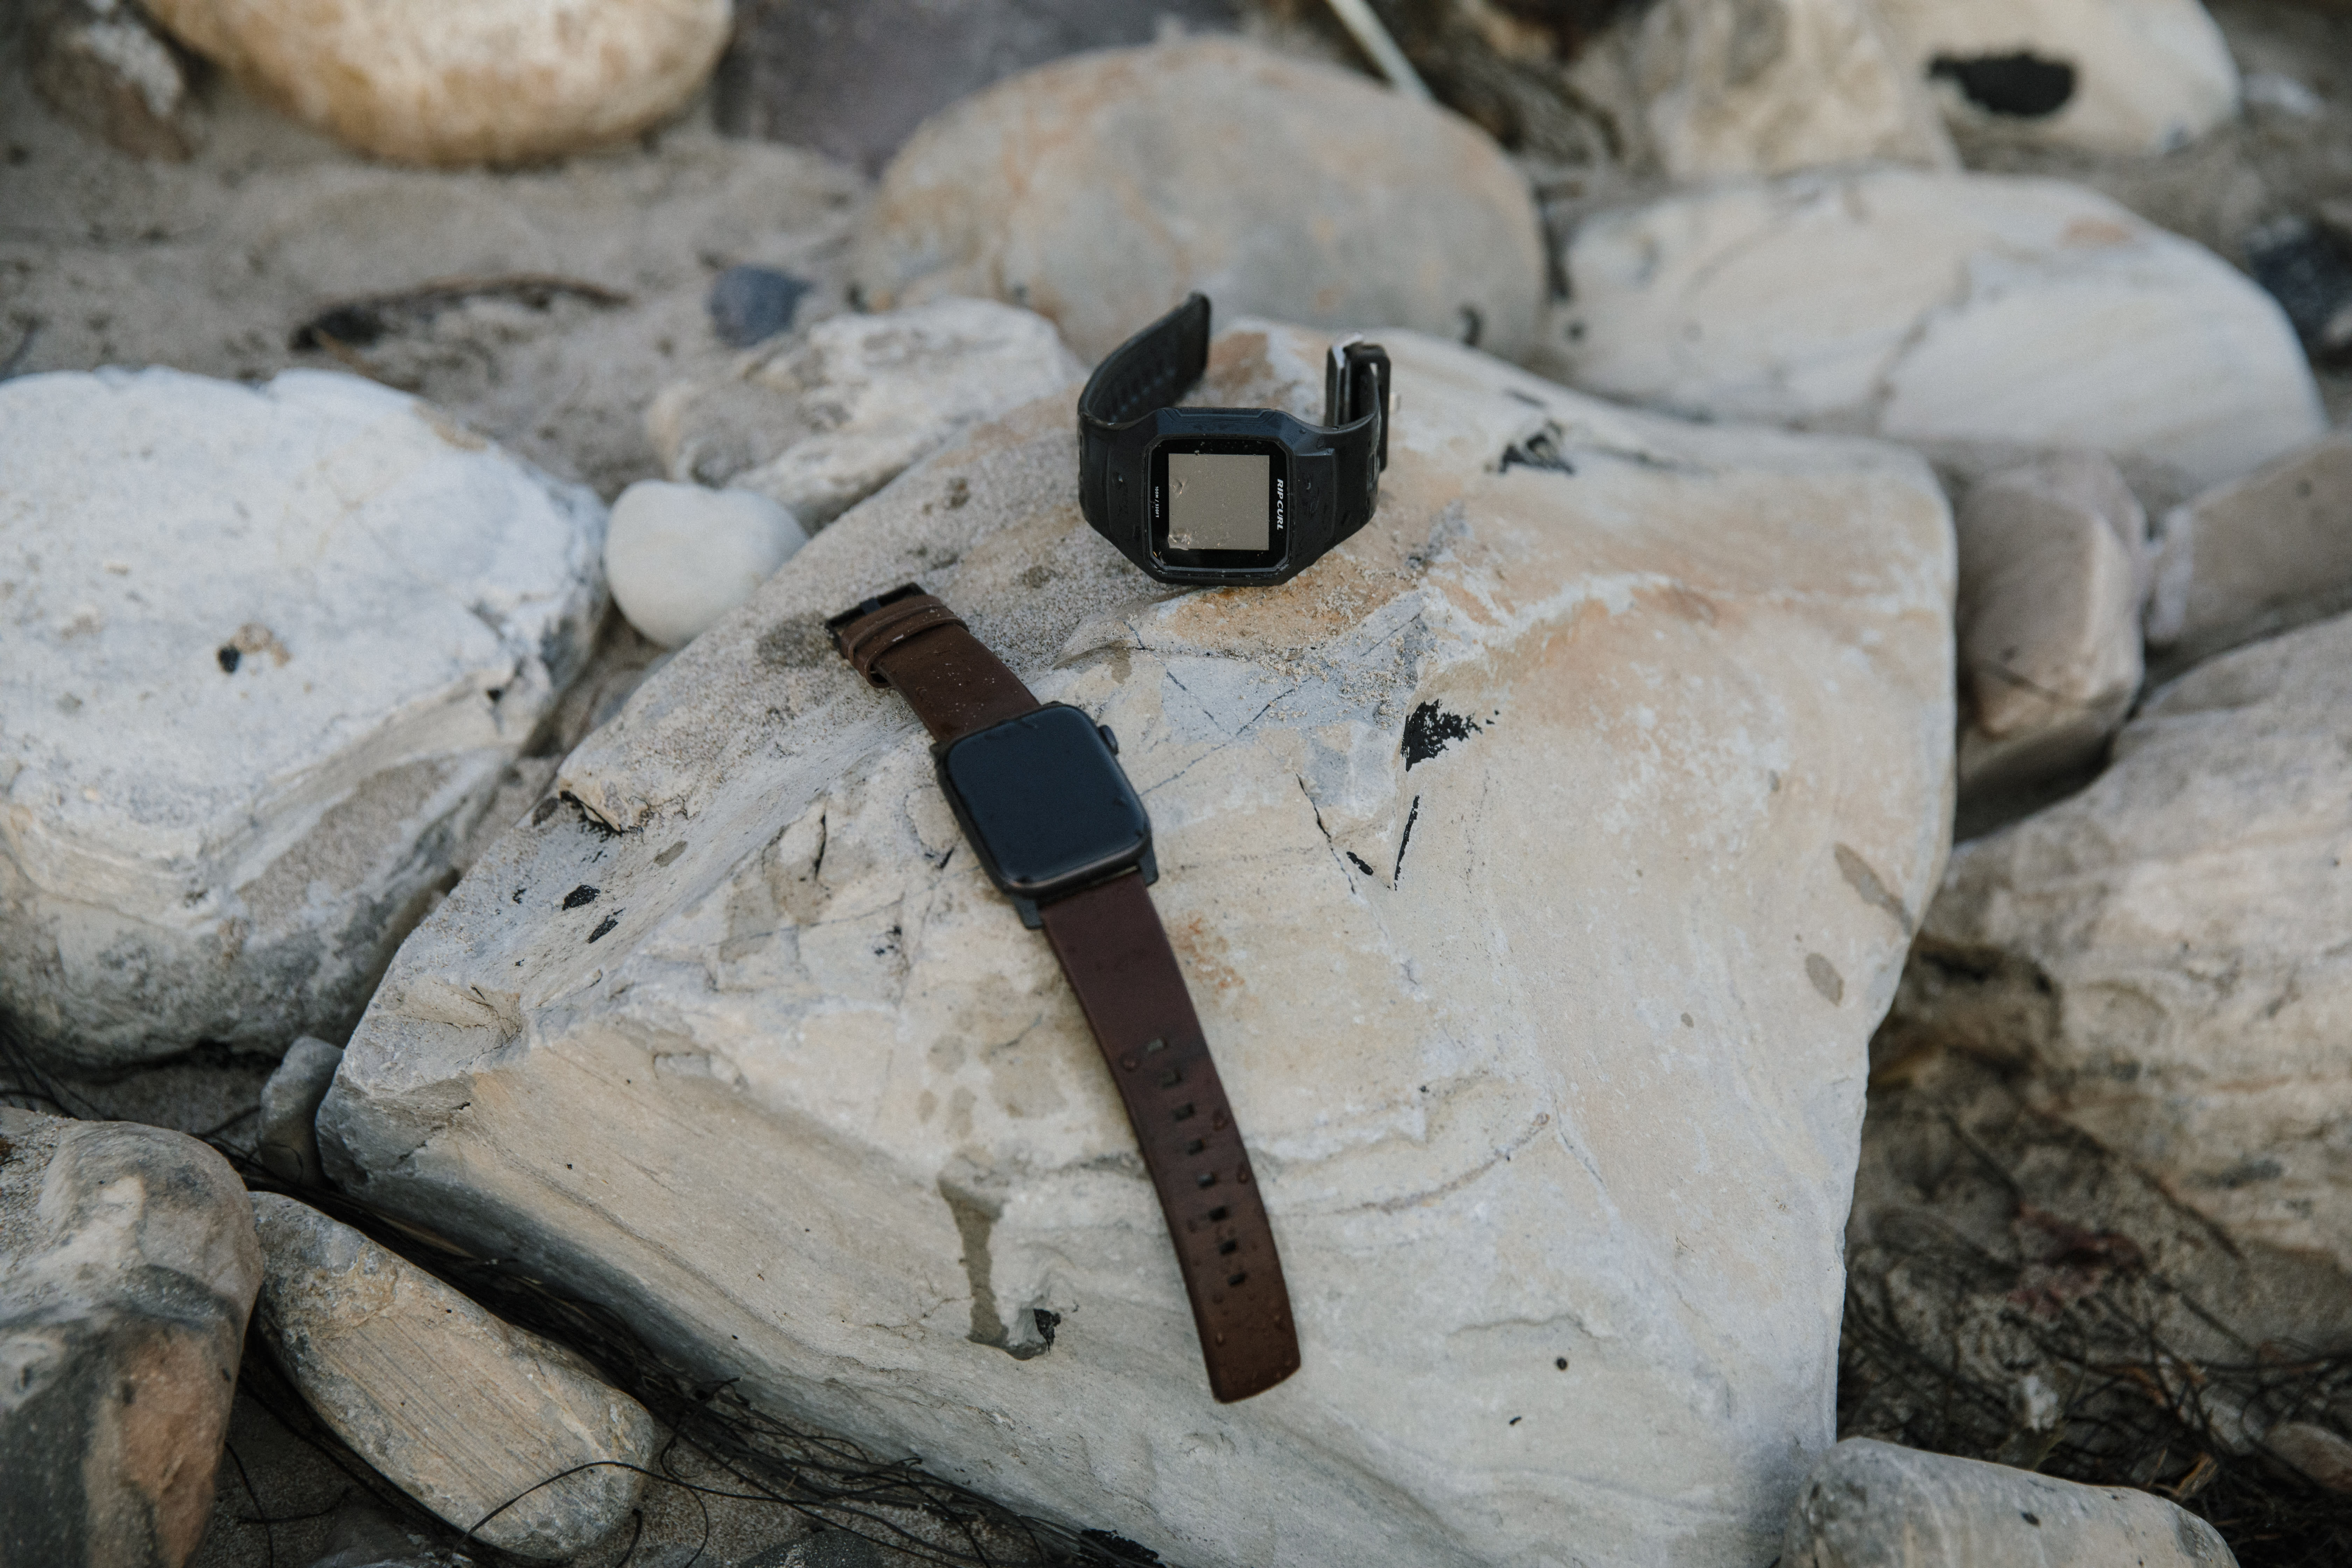 Apple Watch Series 5 and Rip Curl Search GPS 2